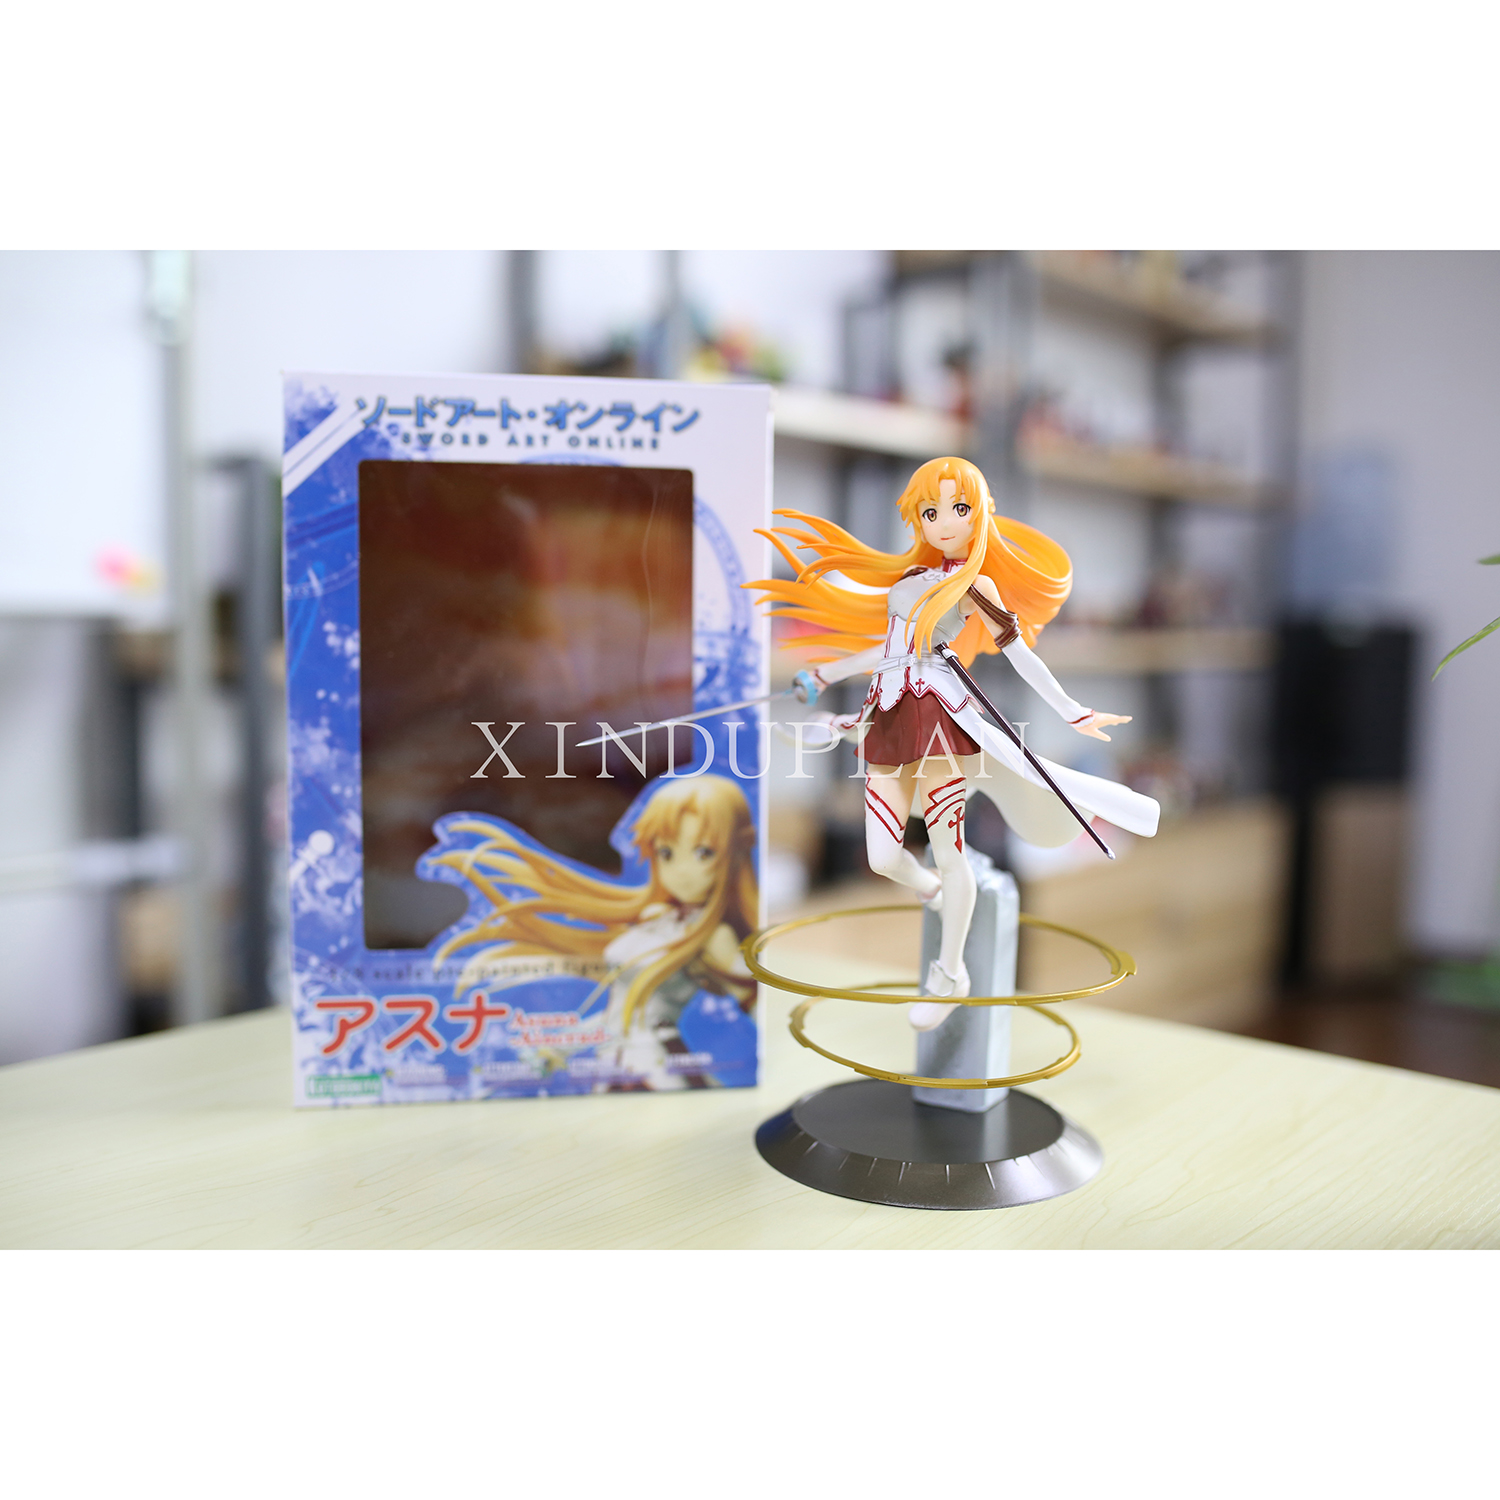 XINDUPLAN Sword Art online Anime Kirito Yuuki Asuna SAO Action Figure Toys 23cm PVC Gifts Collection Model 0467 23cm high quality sword art online model yuki asuna action figure sao asuna figure toy